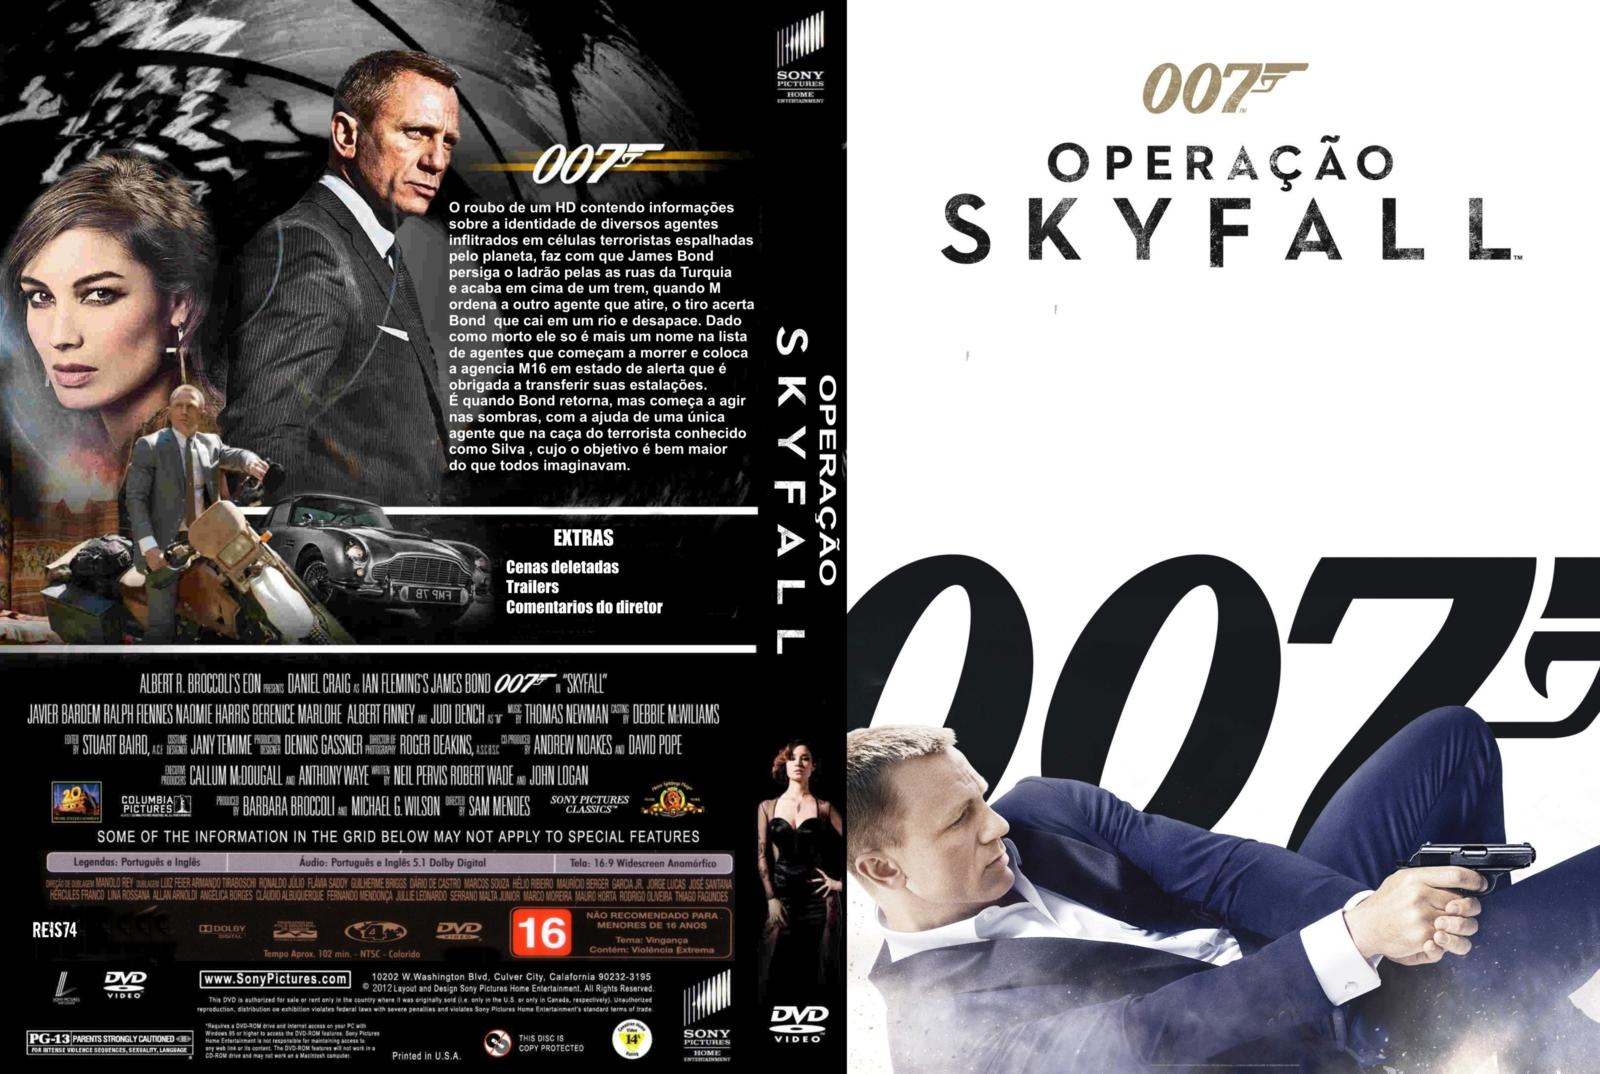 Skyfall Dvd Cove...007 Skyfall Dvd Cover